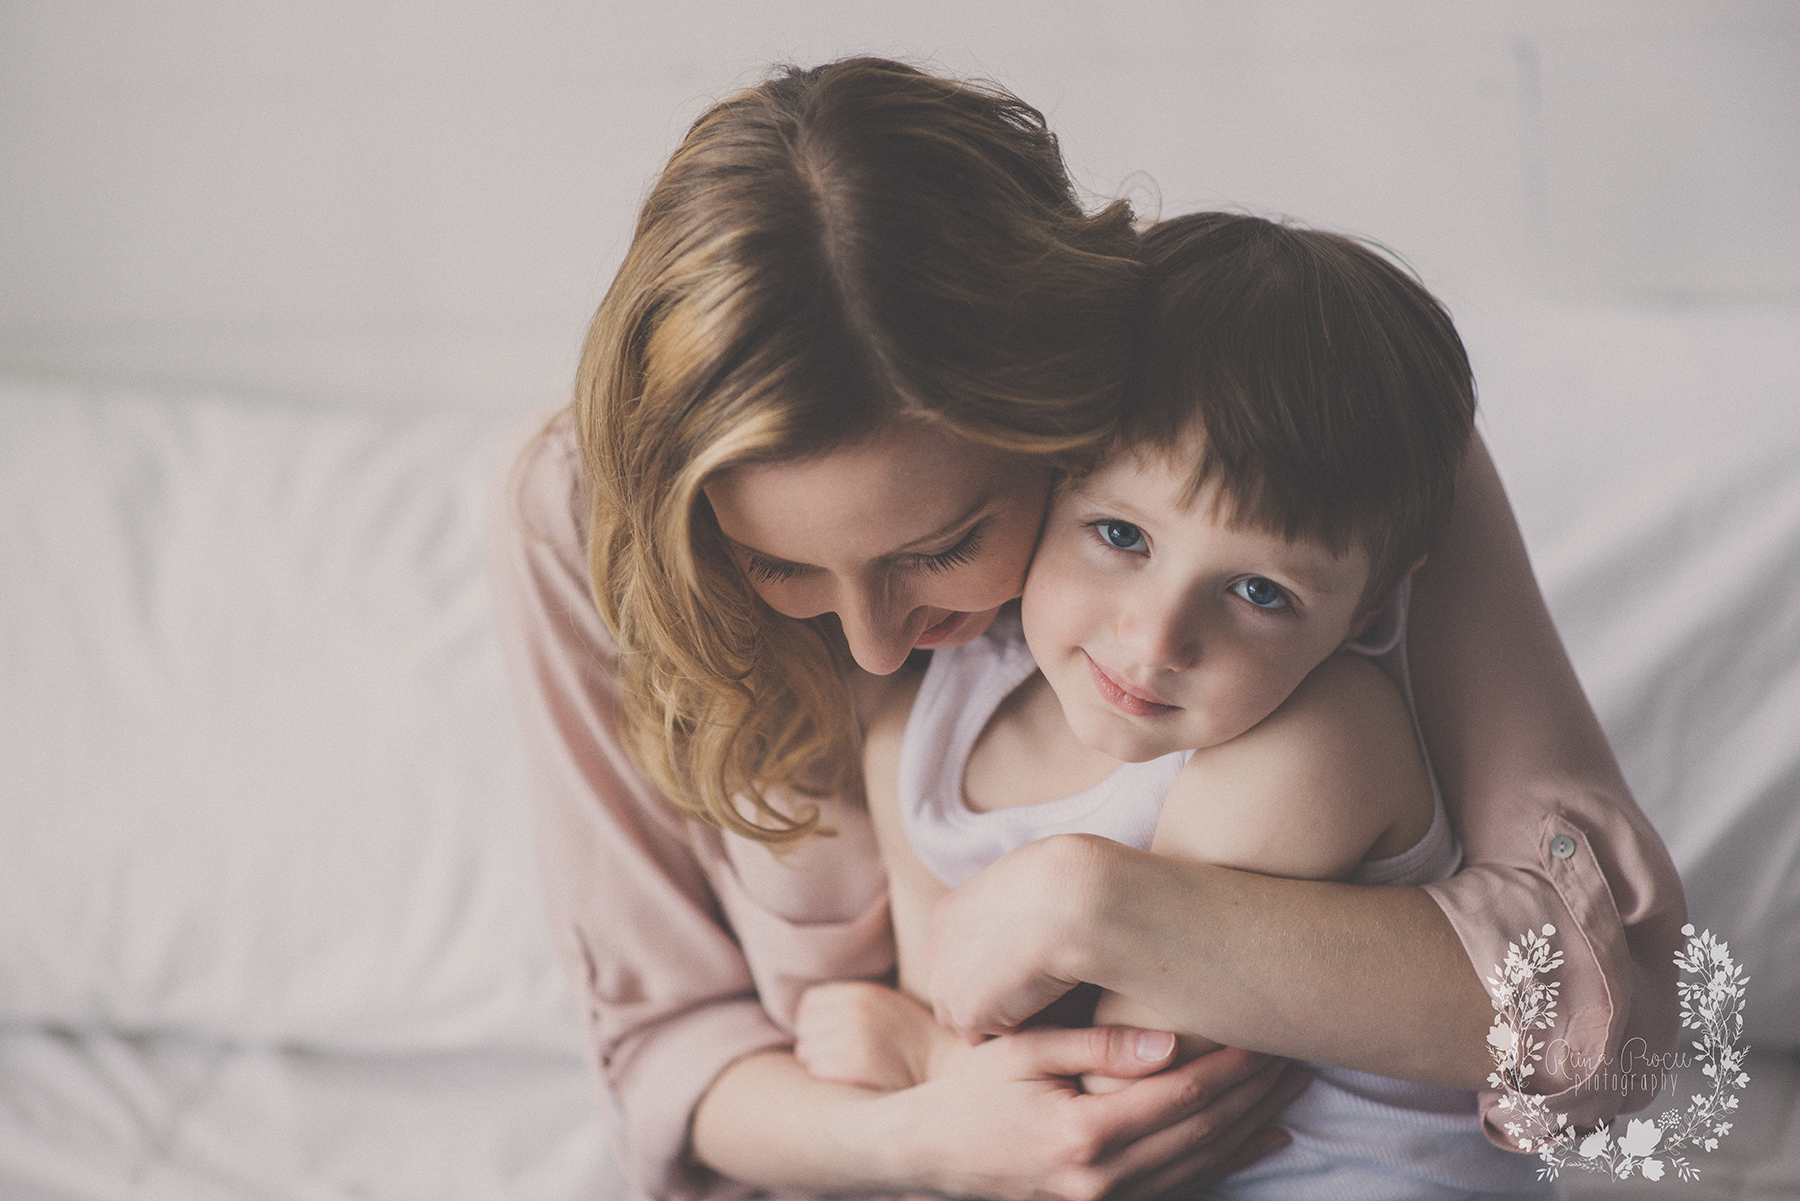 mother-child-love-family-portraits-montreal-photographer28.png